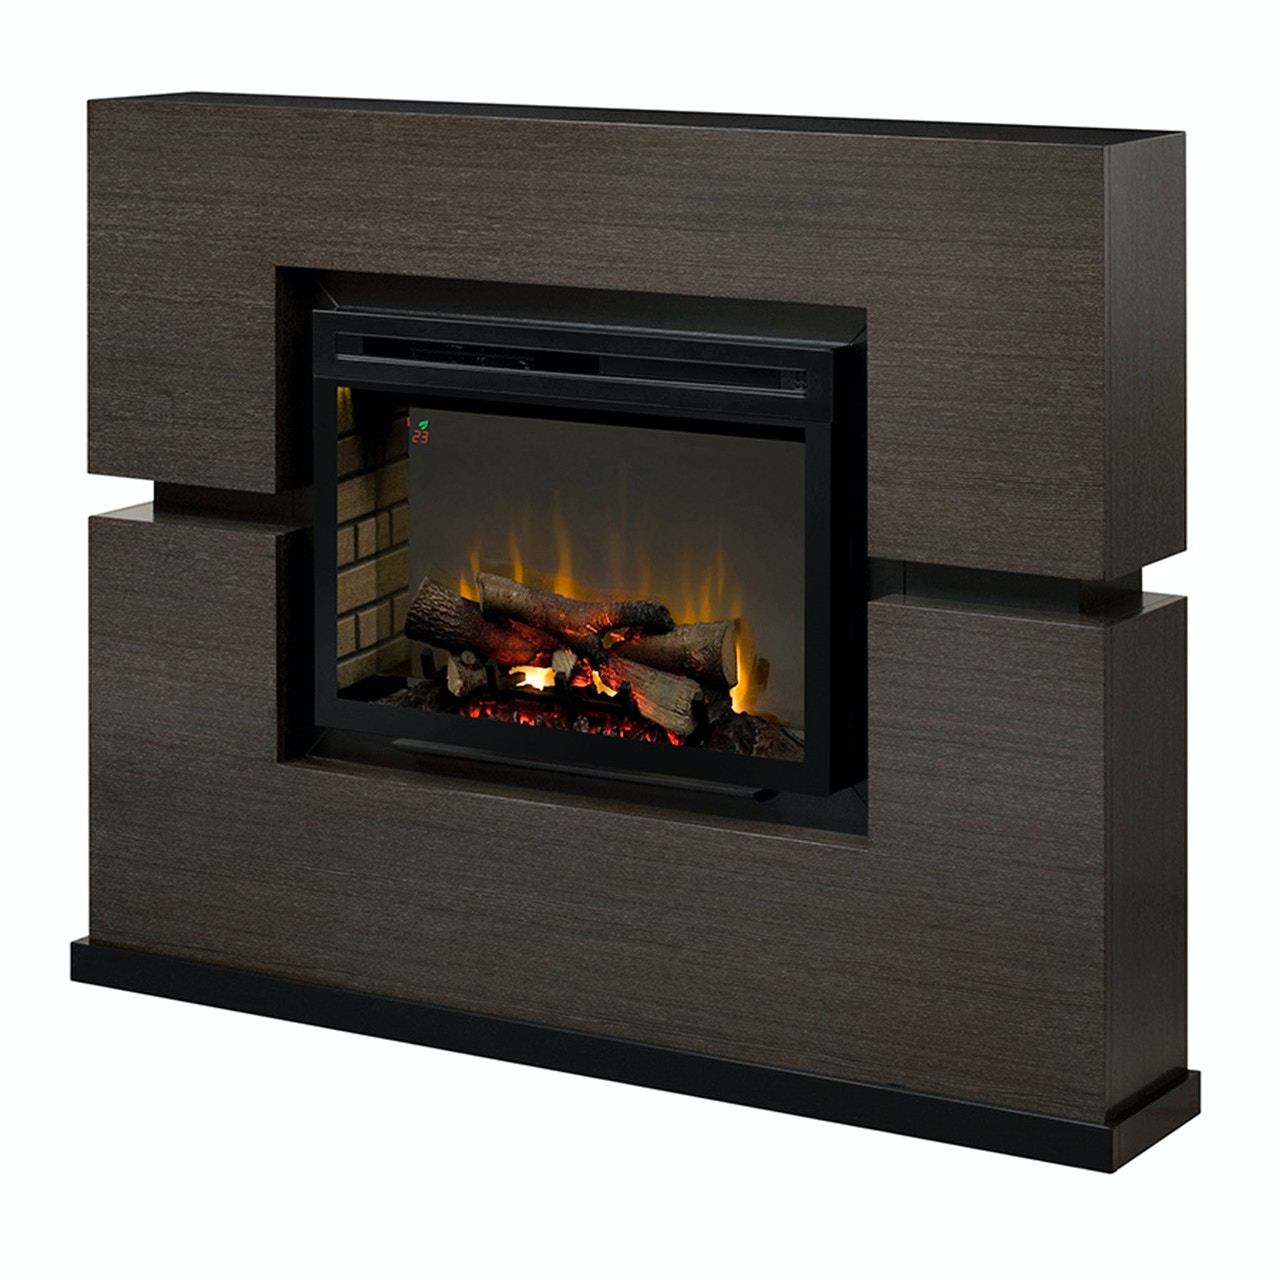 Dimplex Dining Room Linwood Electric Fireplace GDS33HL 1310RG At Matter  Brothers Furniture